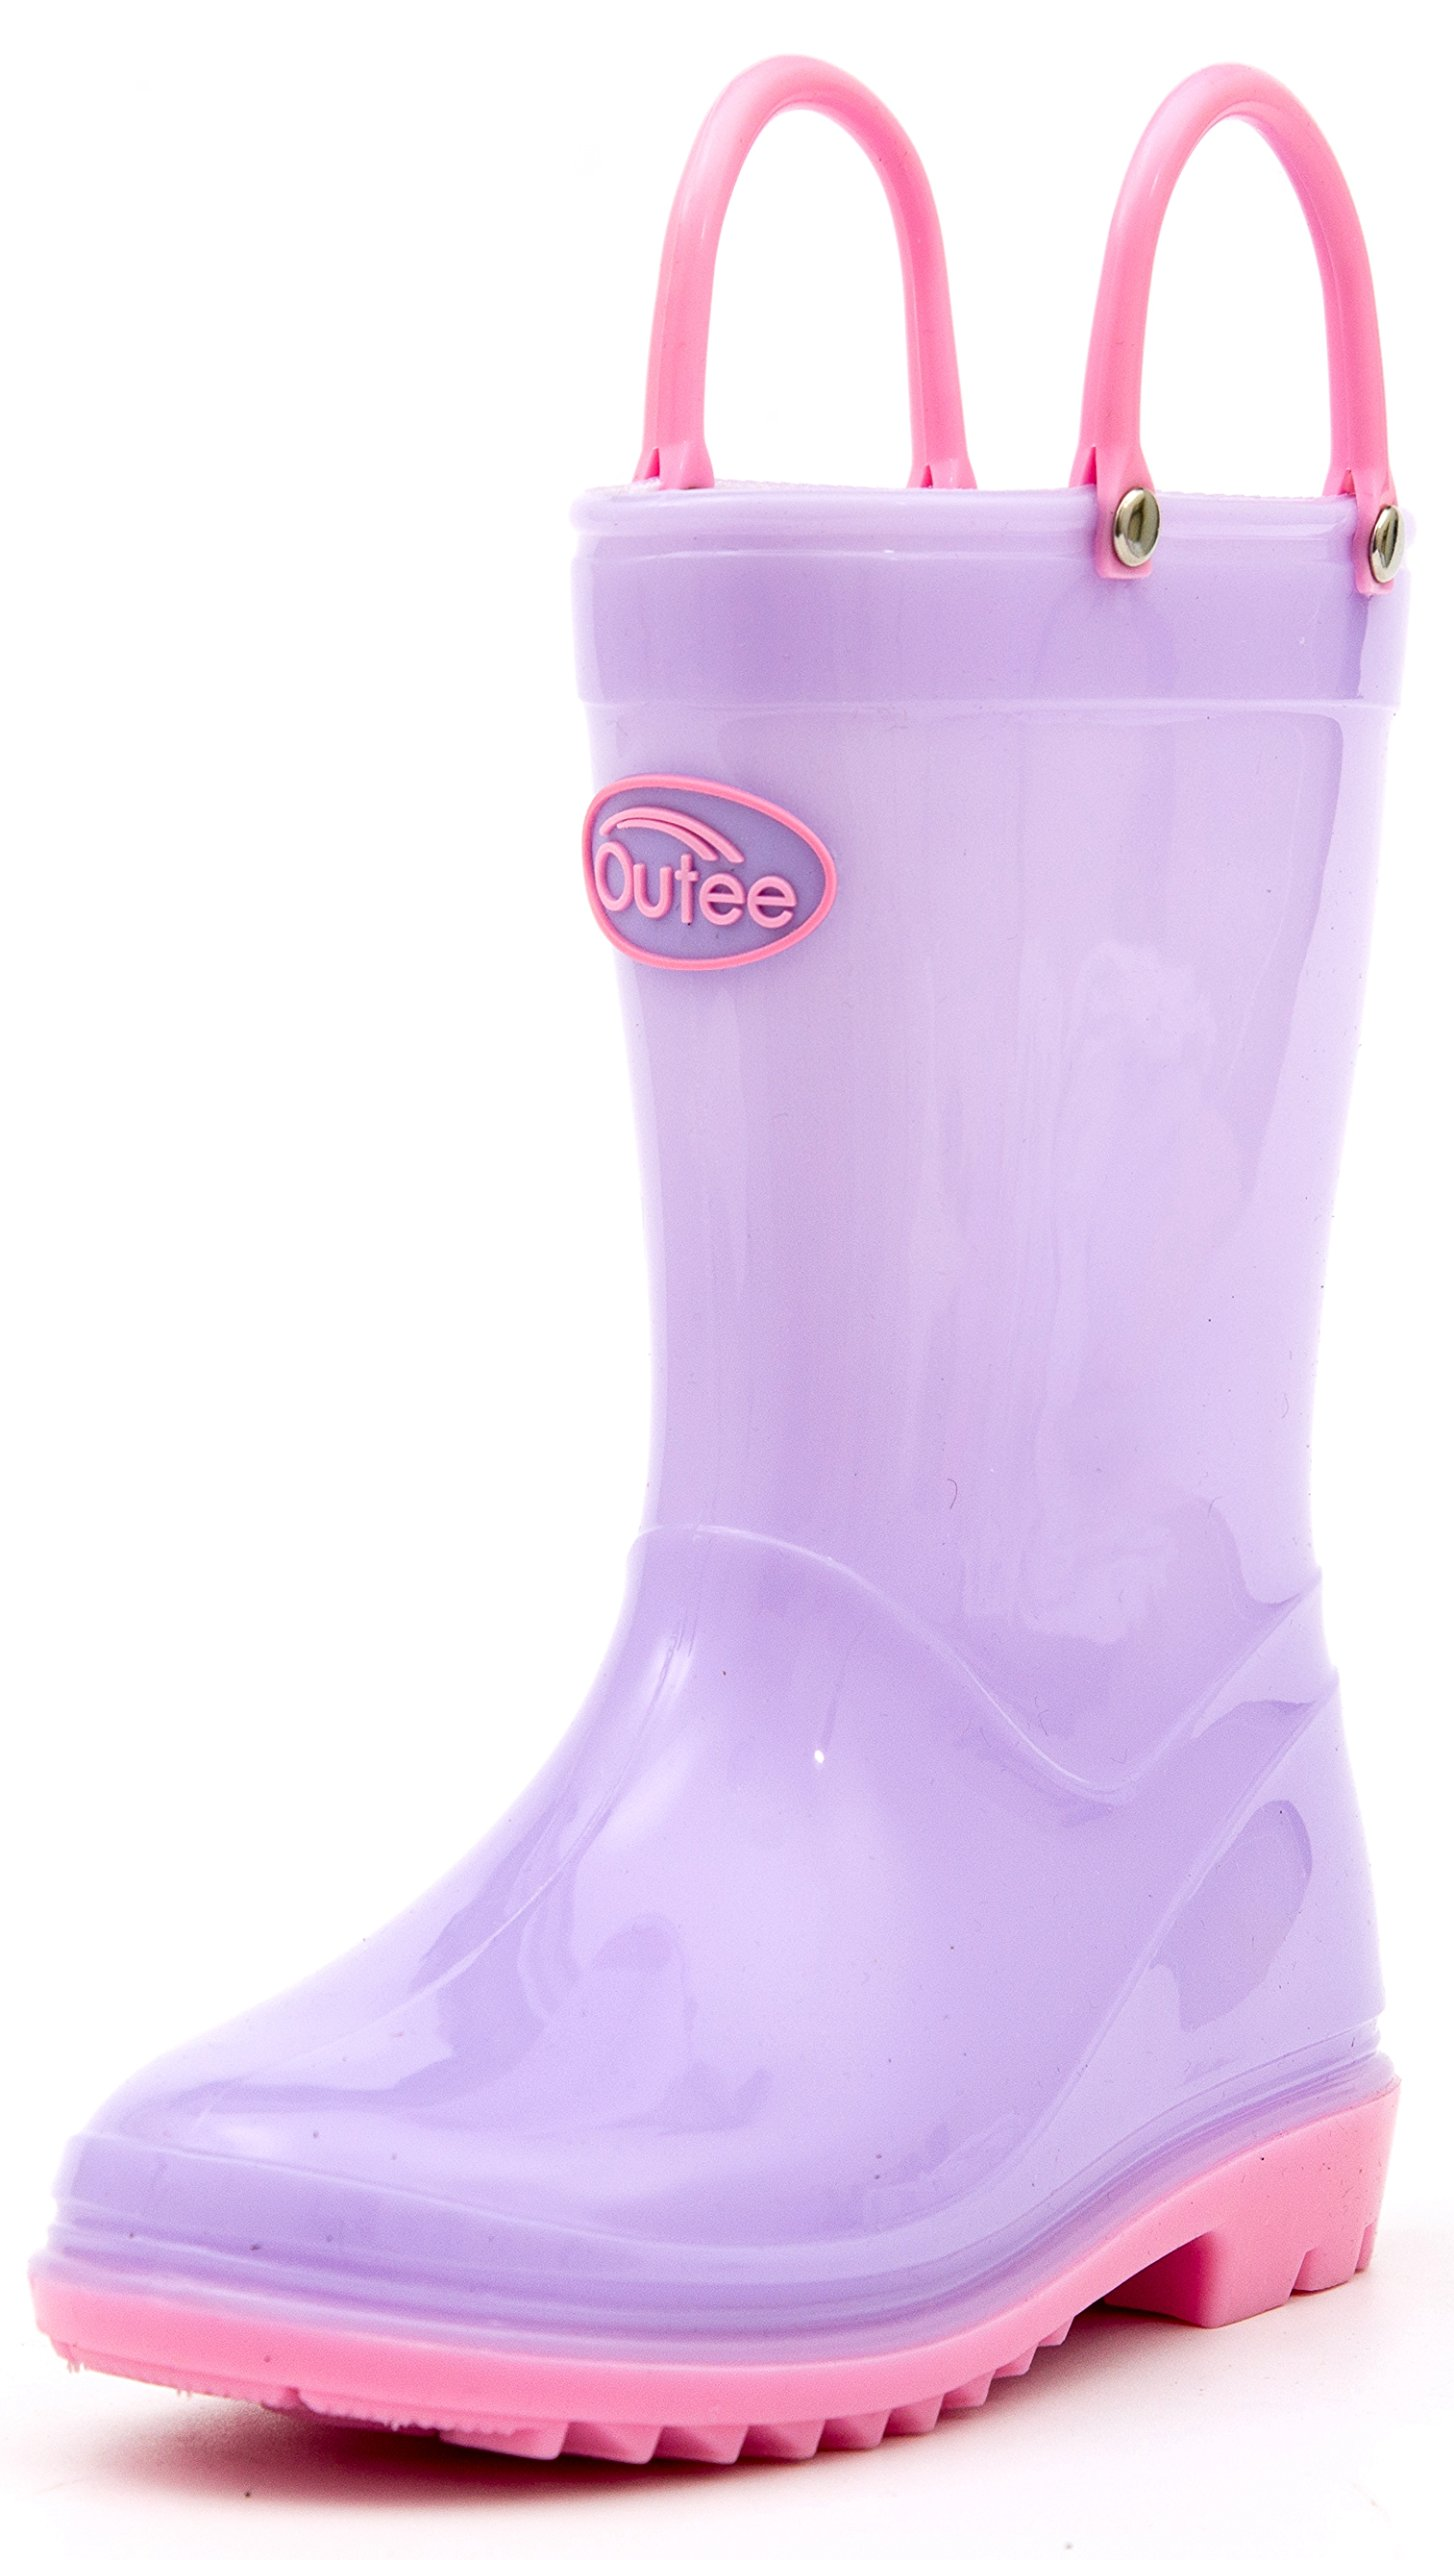 Outee Kids Toddler Boys Girls Rain Boots Waterproof Shoes Lightweight Purple Solid Cute Lovely Funny with Easy-On Handles Classic Comfortable (Size 11,Purple)